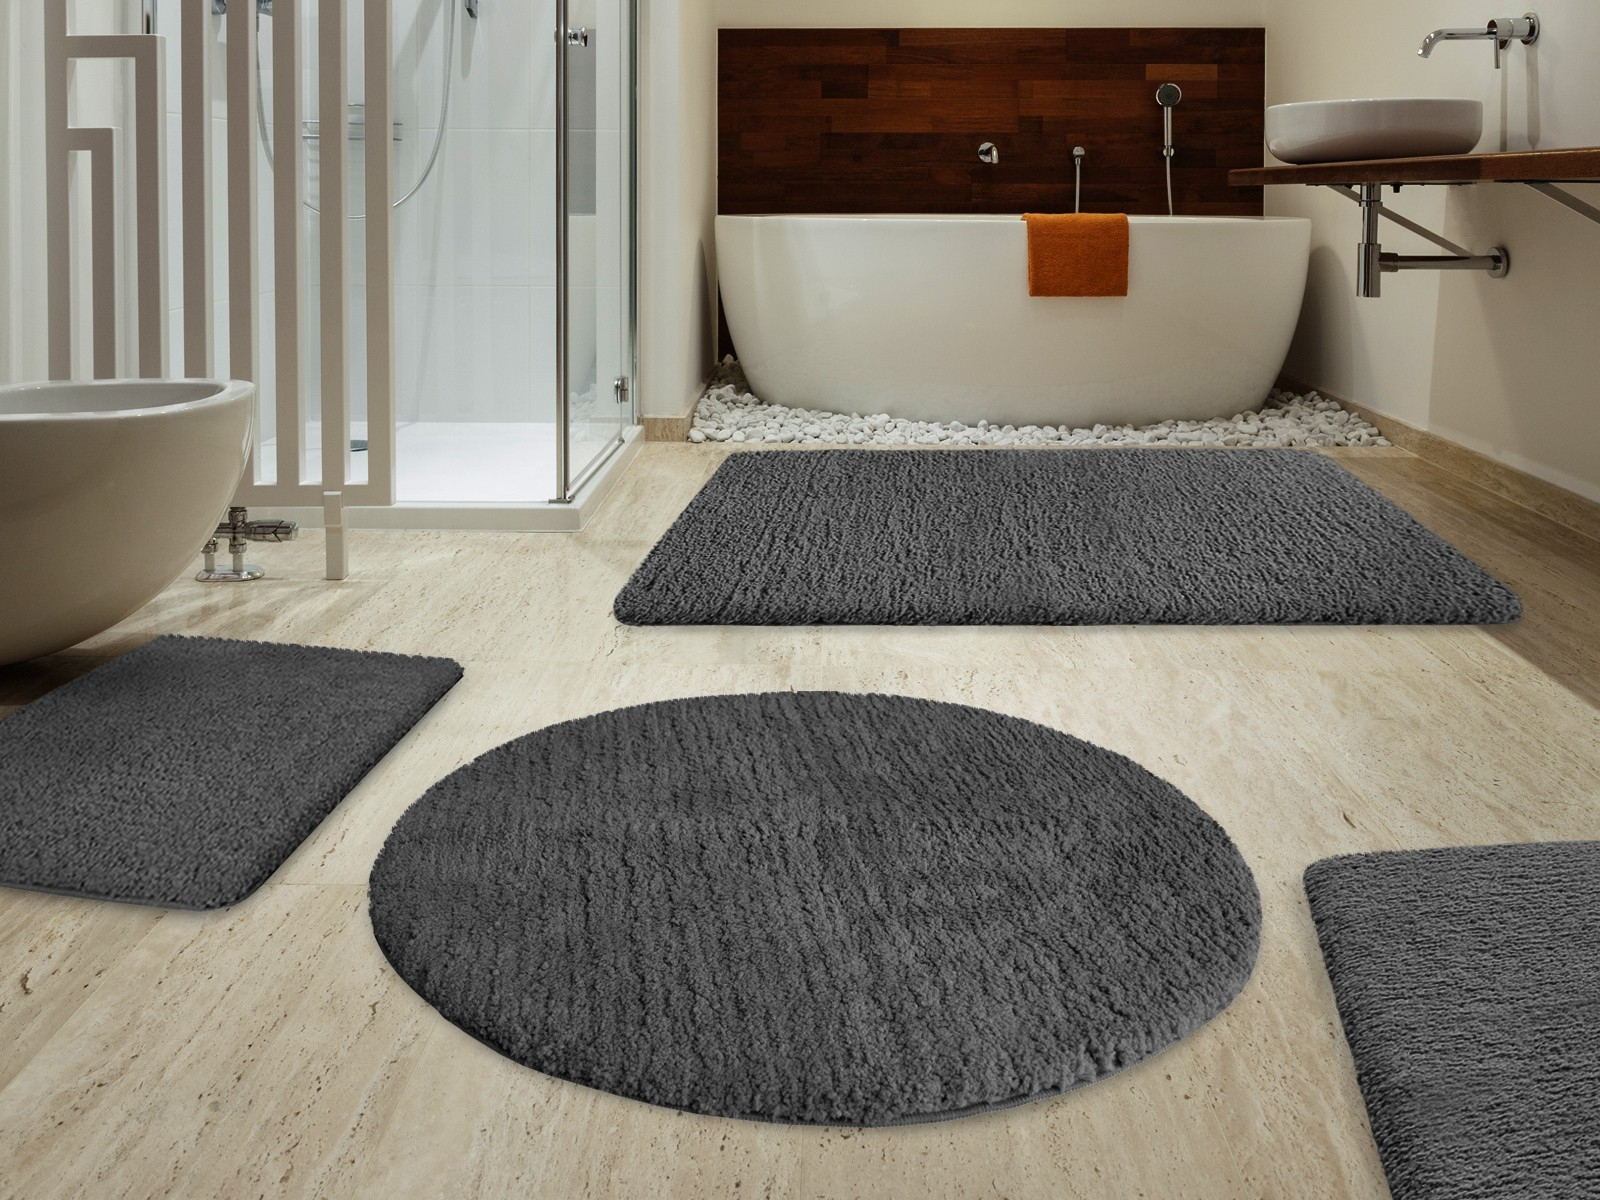 Dark Grey Bathroom Rugsbath rugs grey bathroom trends 2017 2018